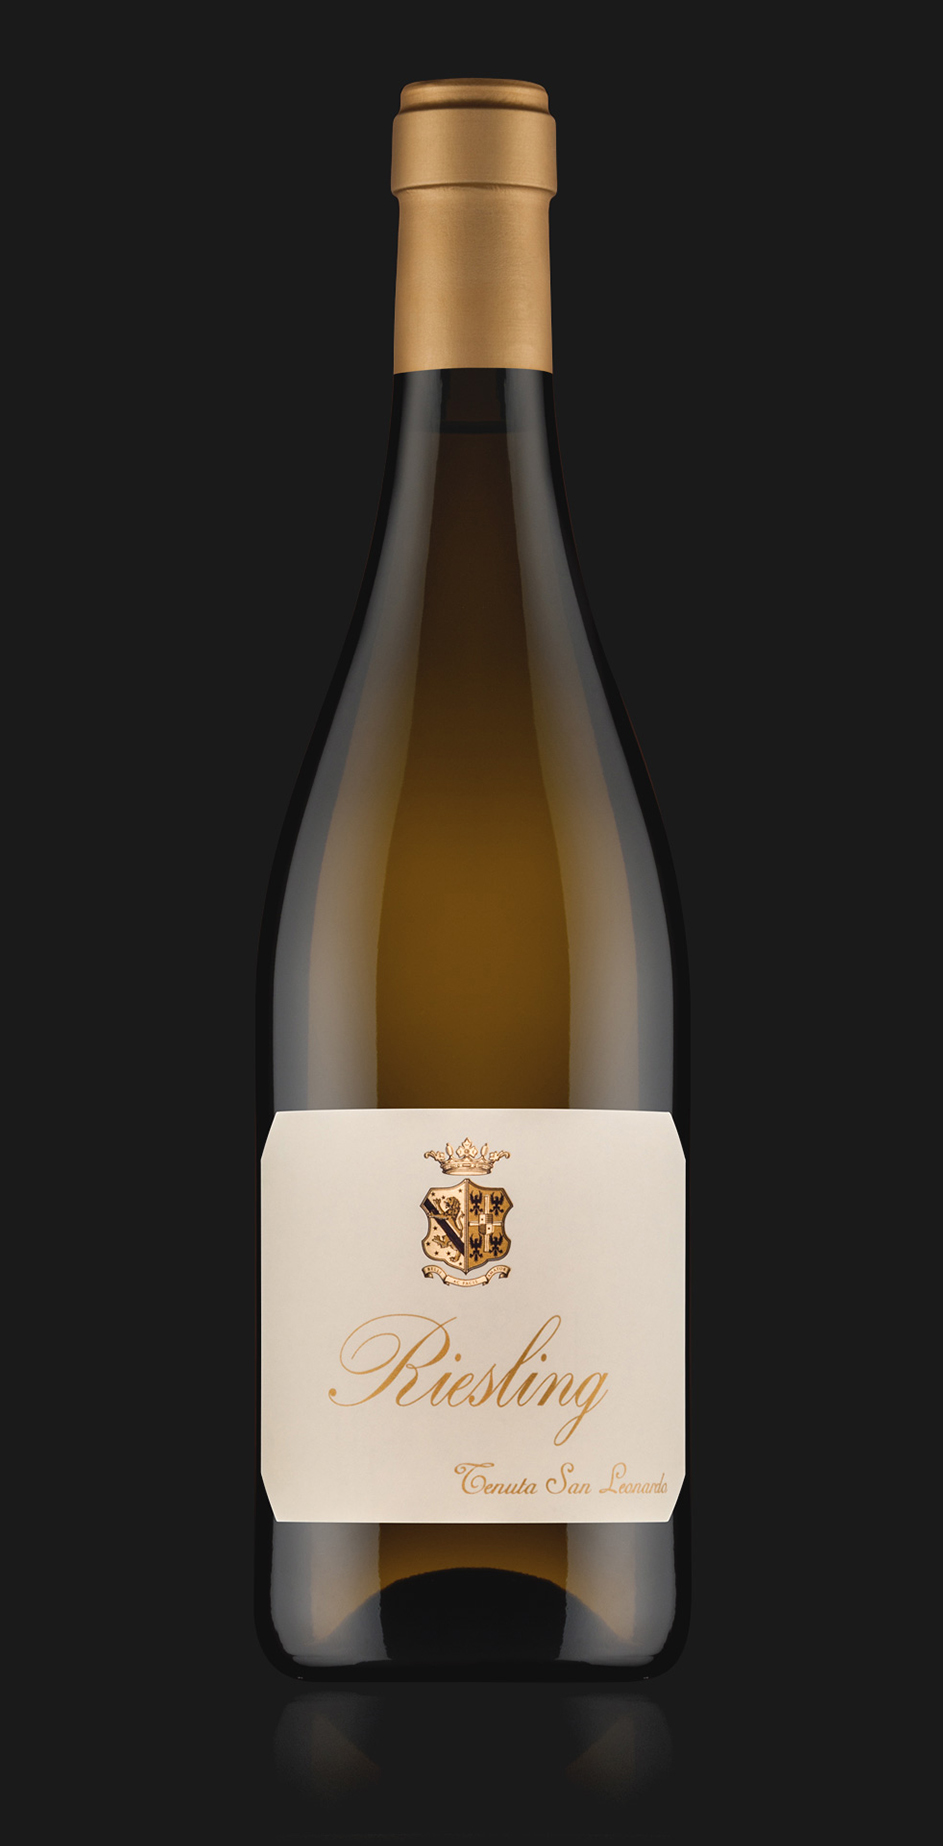 Acquista online Riesling